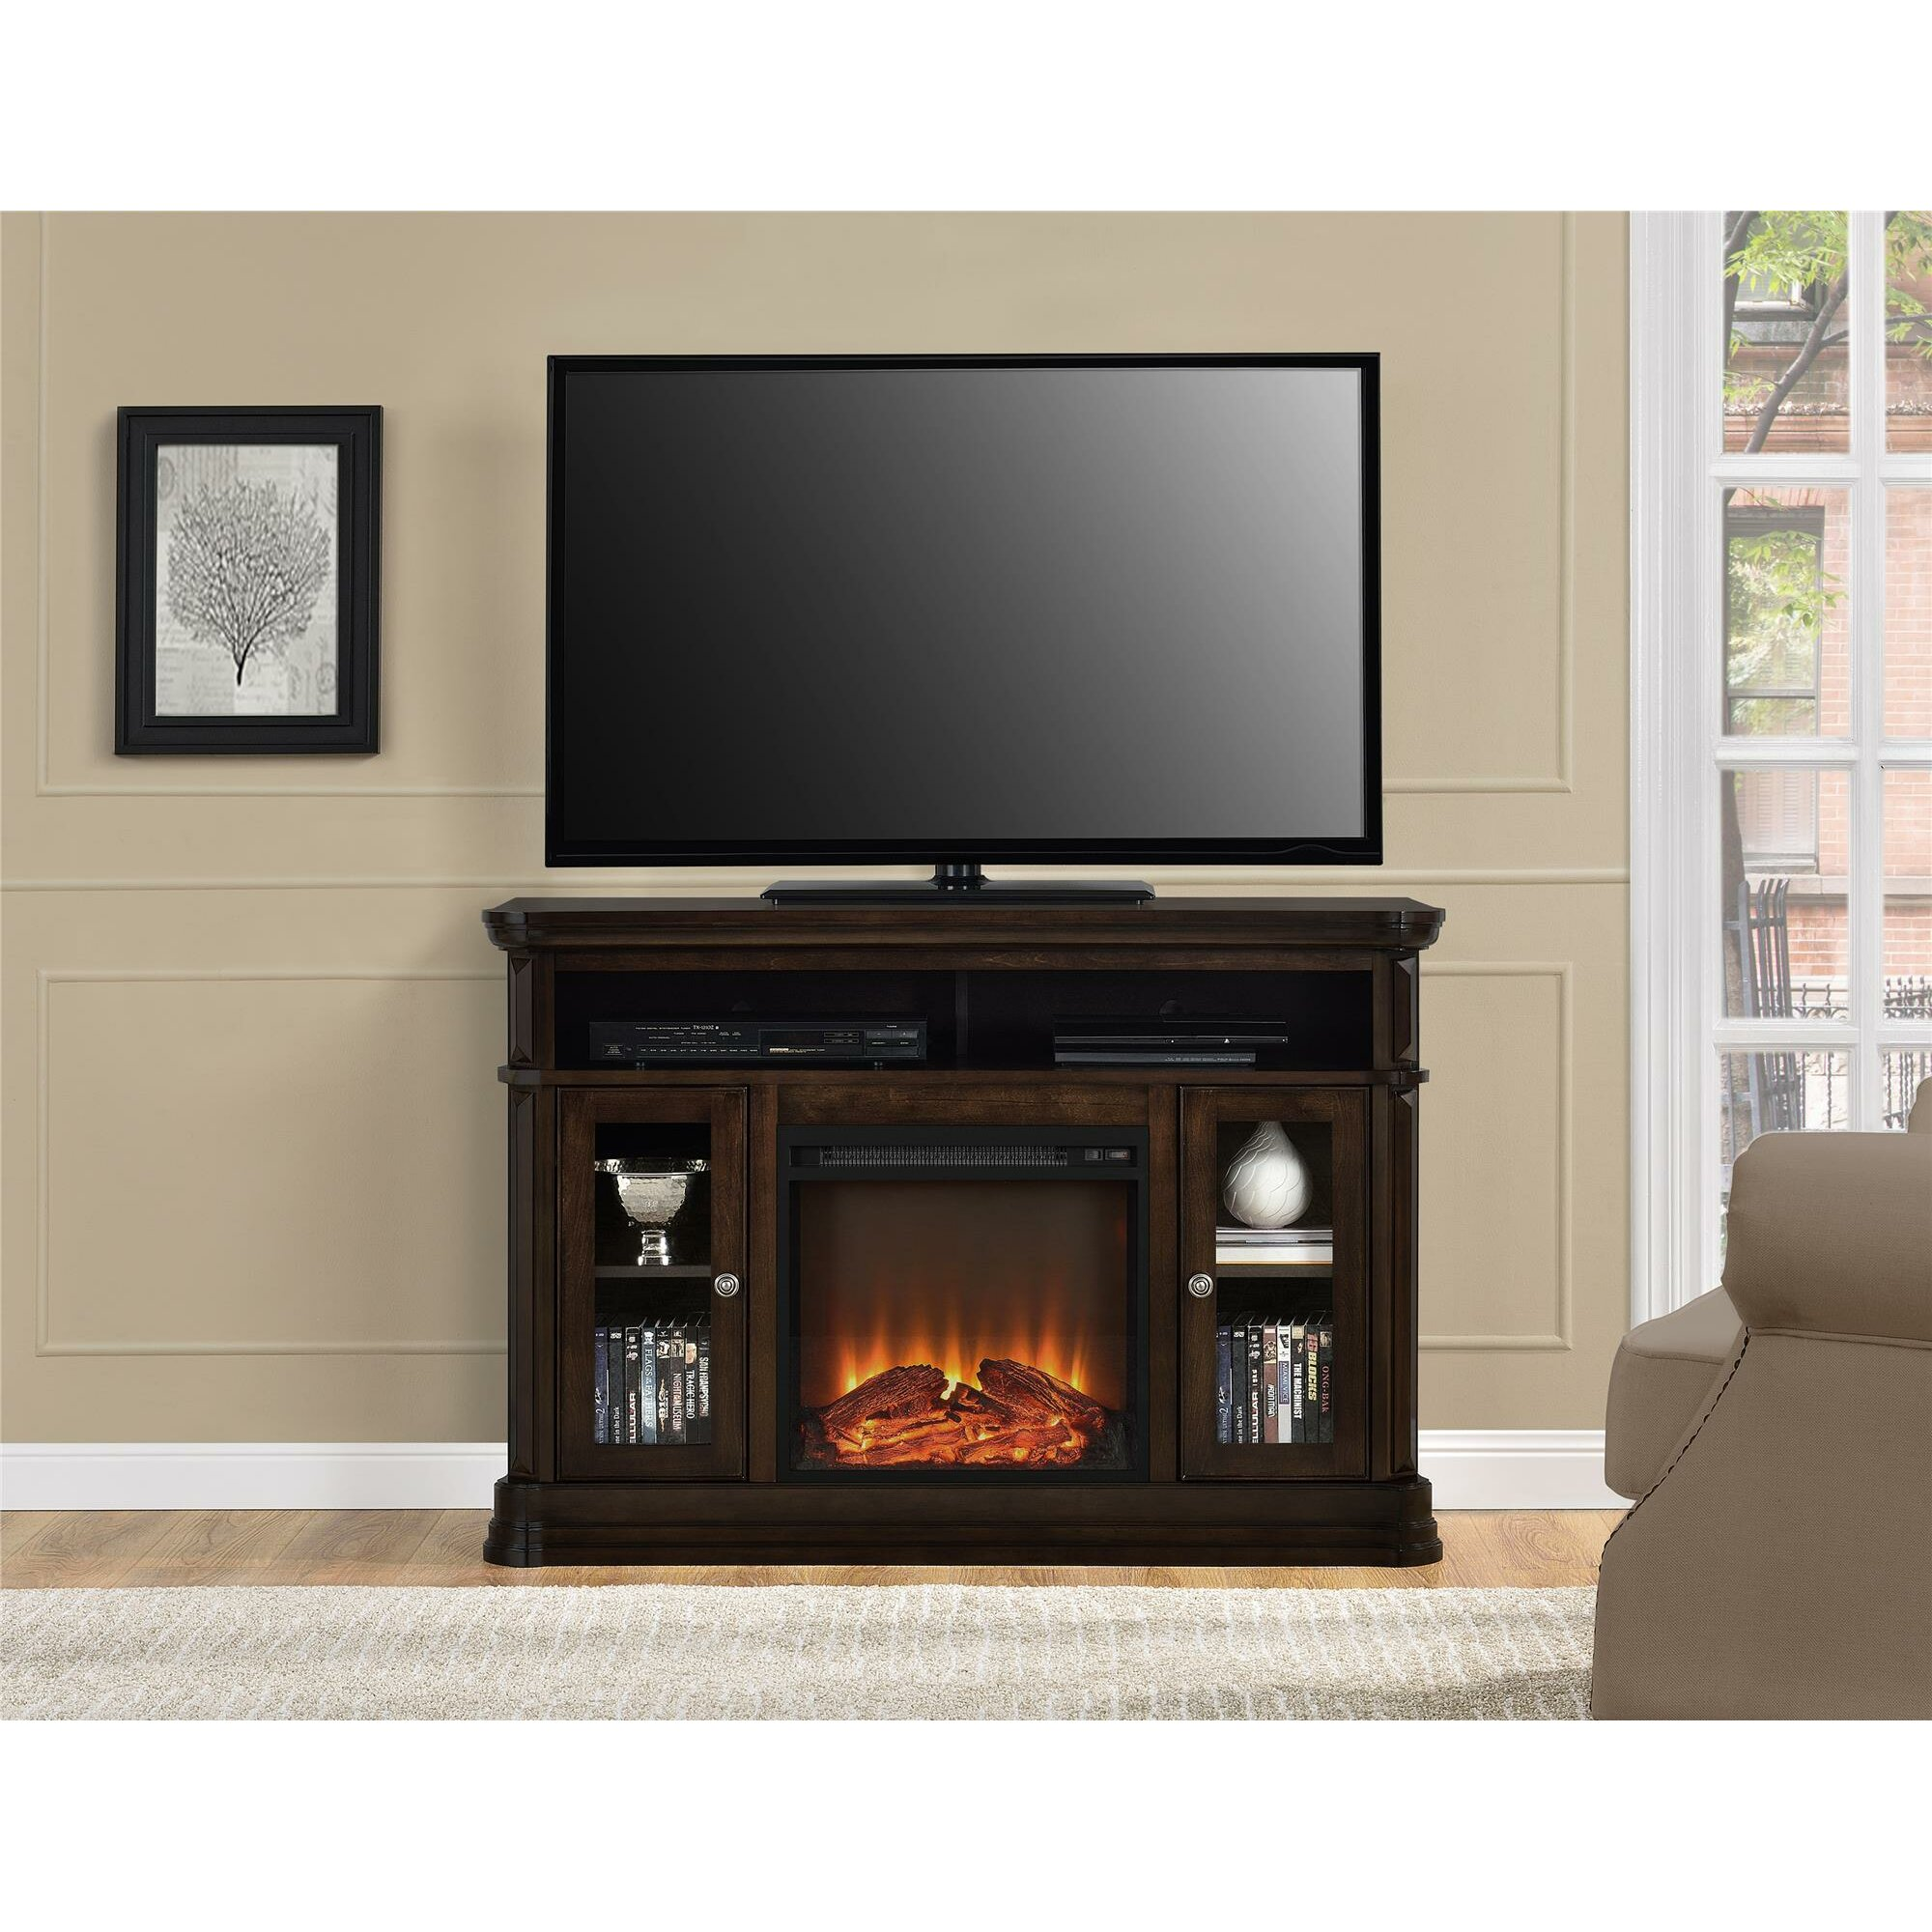 Astoria Grand Ganado 473 TV Stand with Electric Fireplace